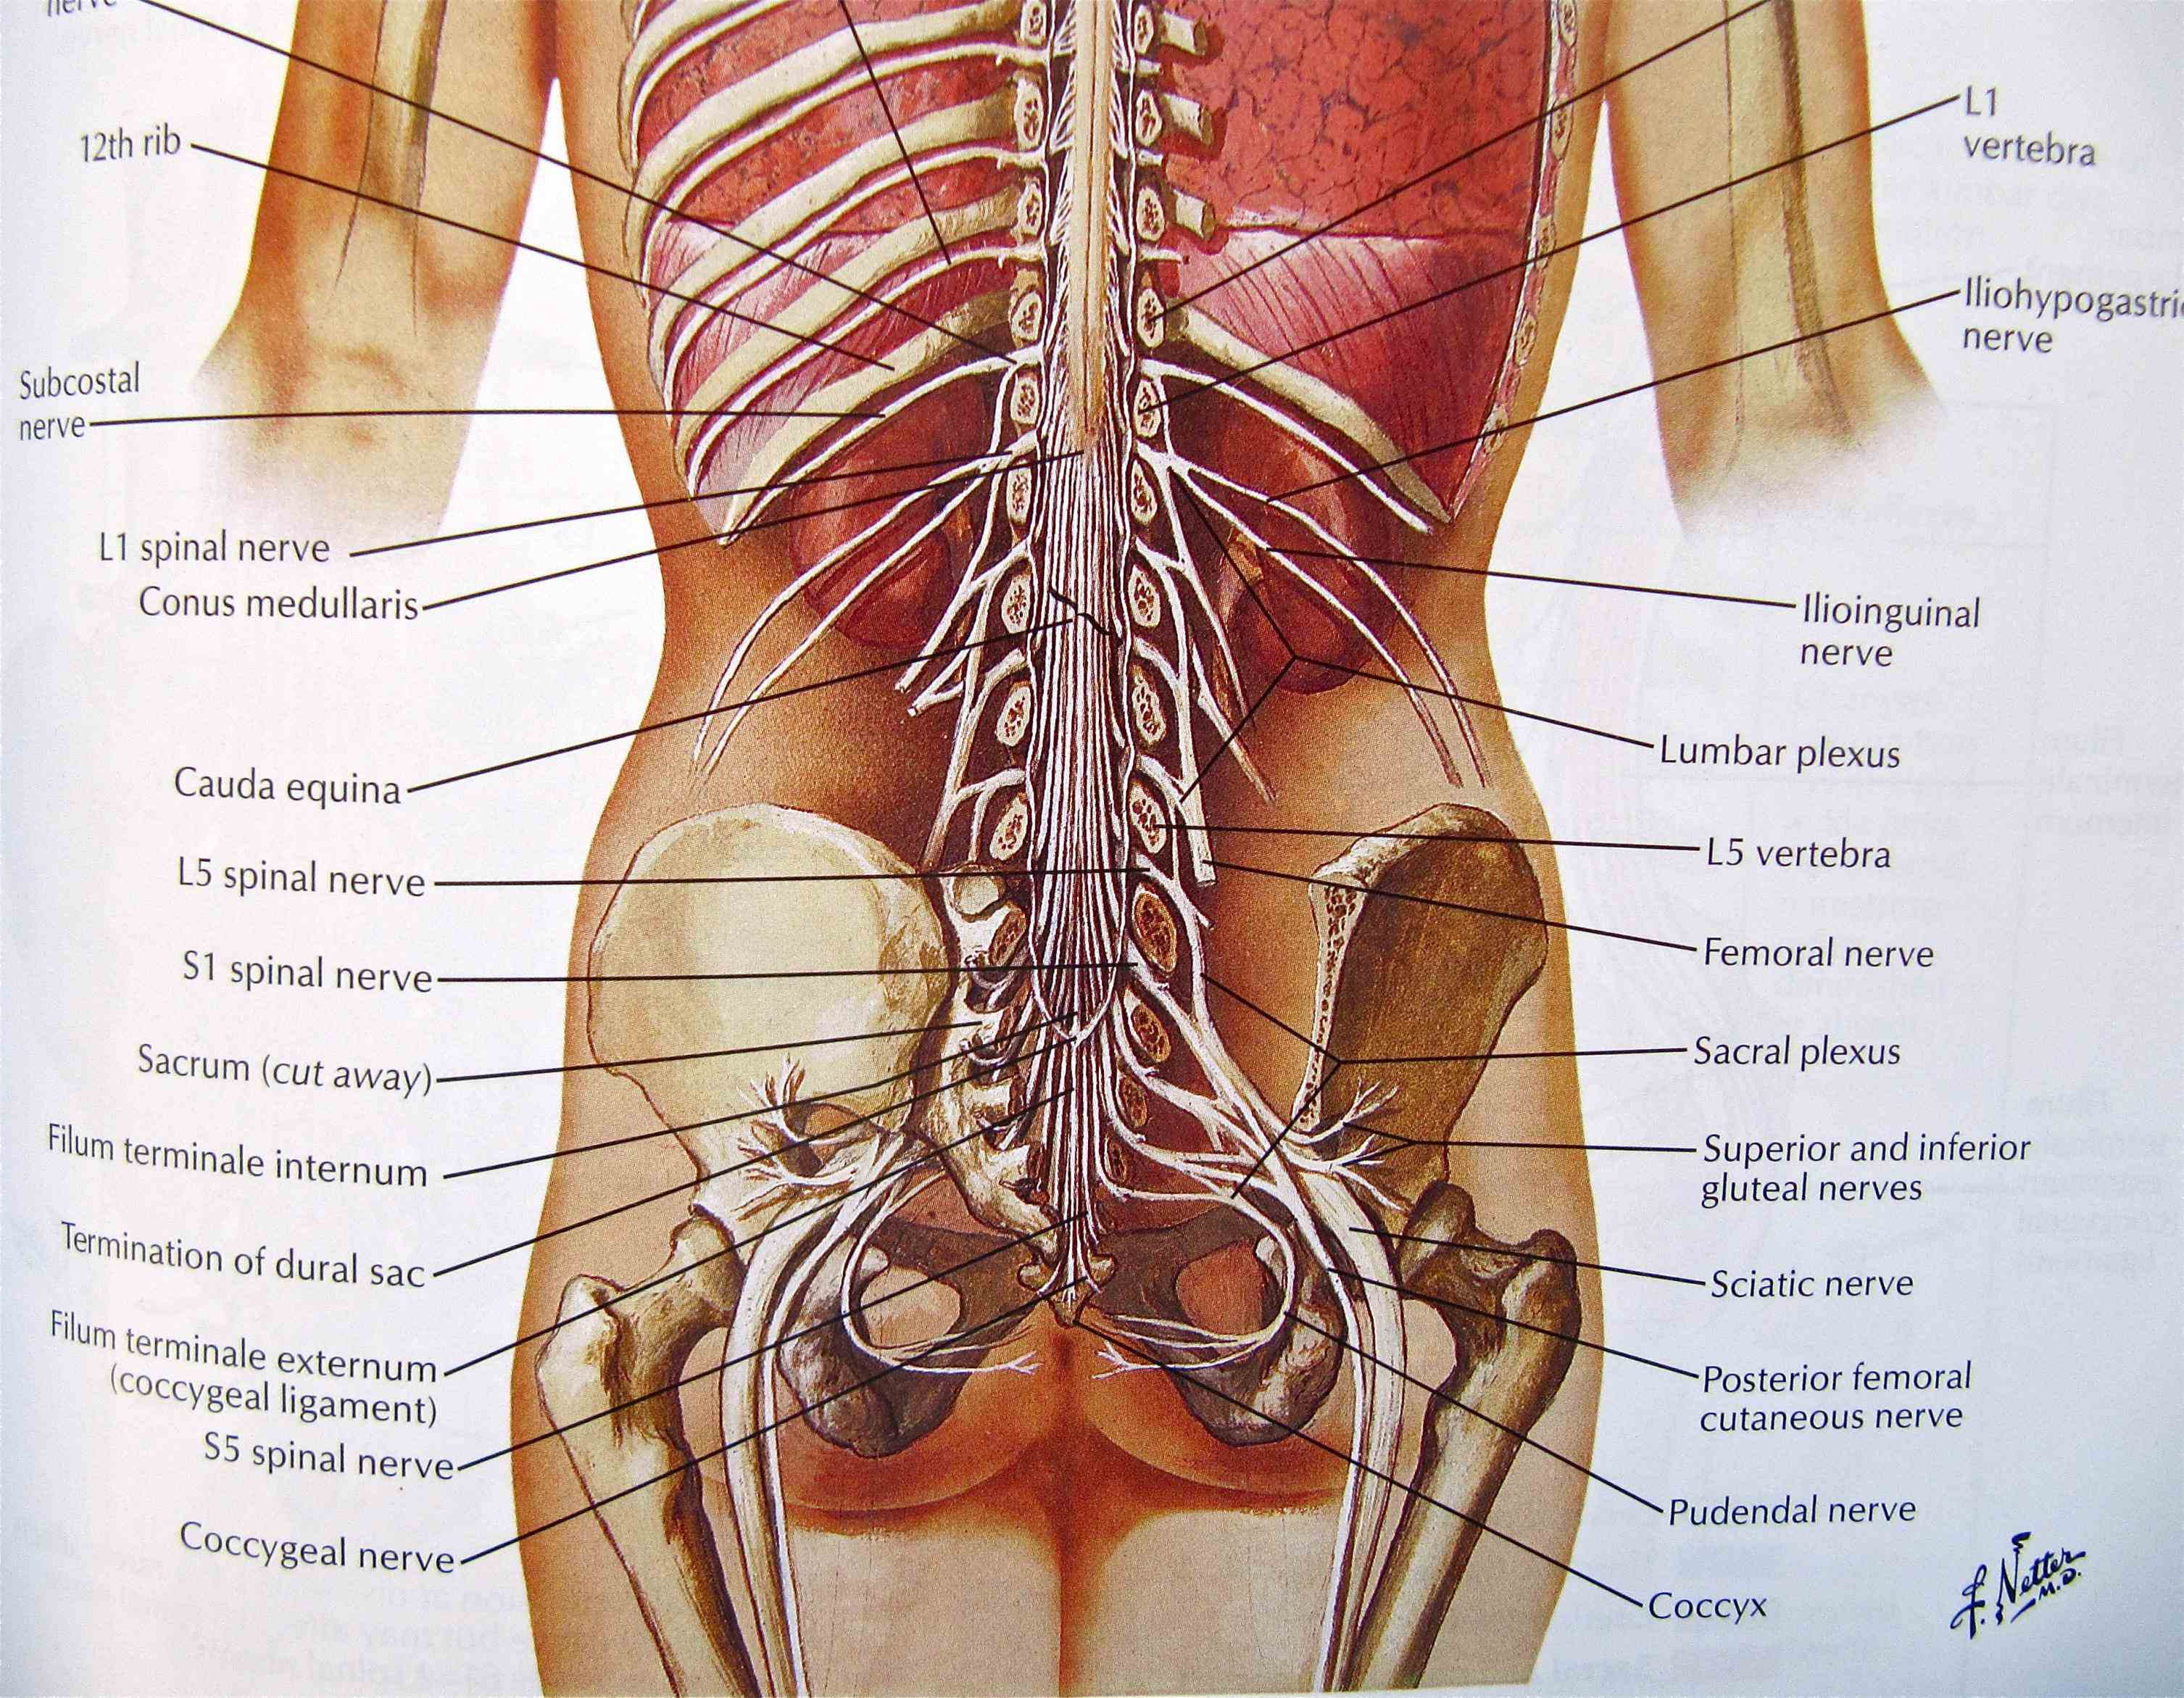 which carries motor sensory and autonomic signals between the cord body in human there are pairs nerves one each